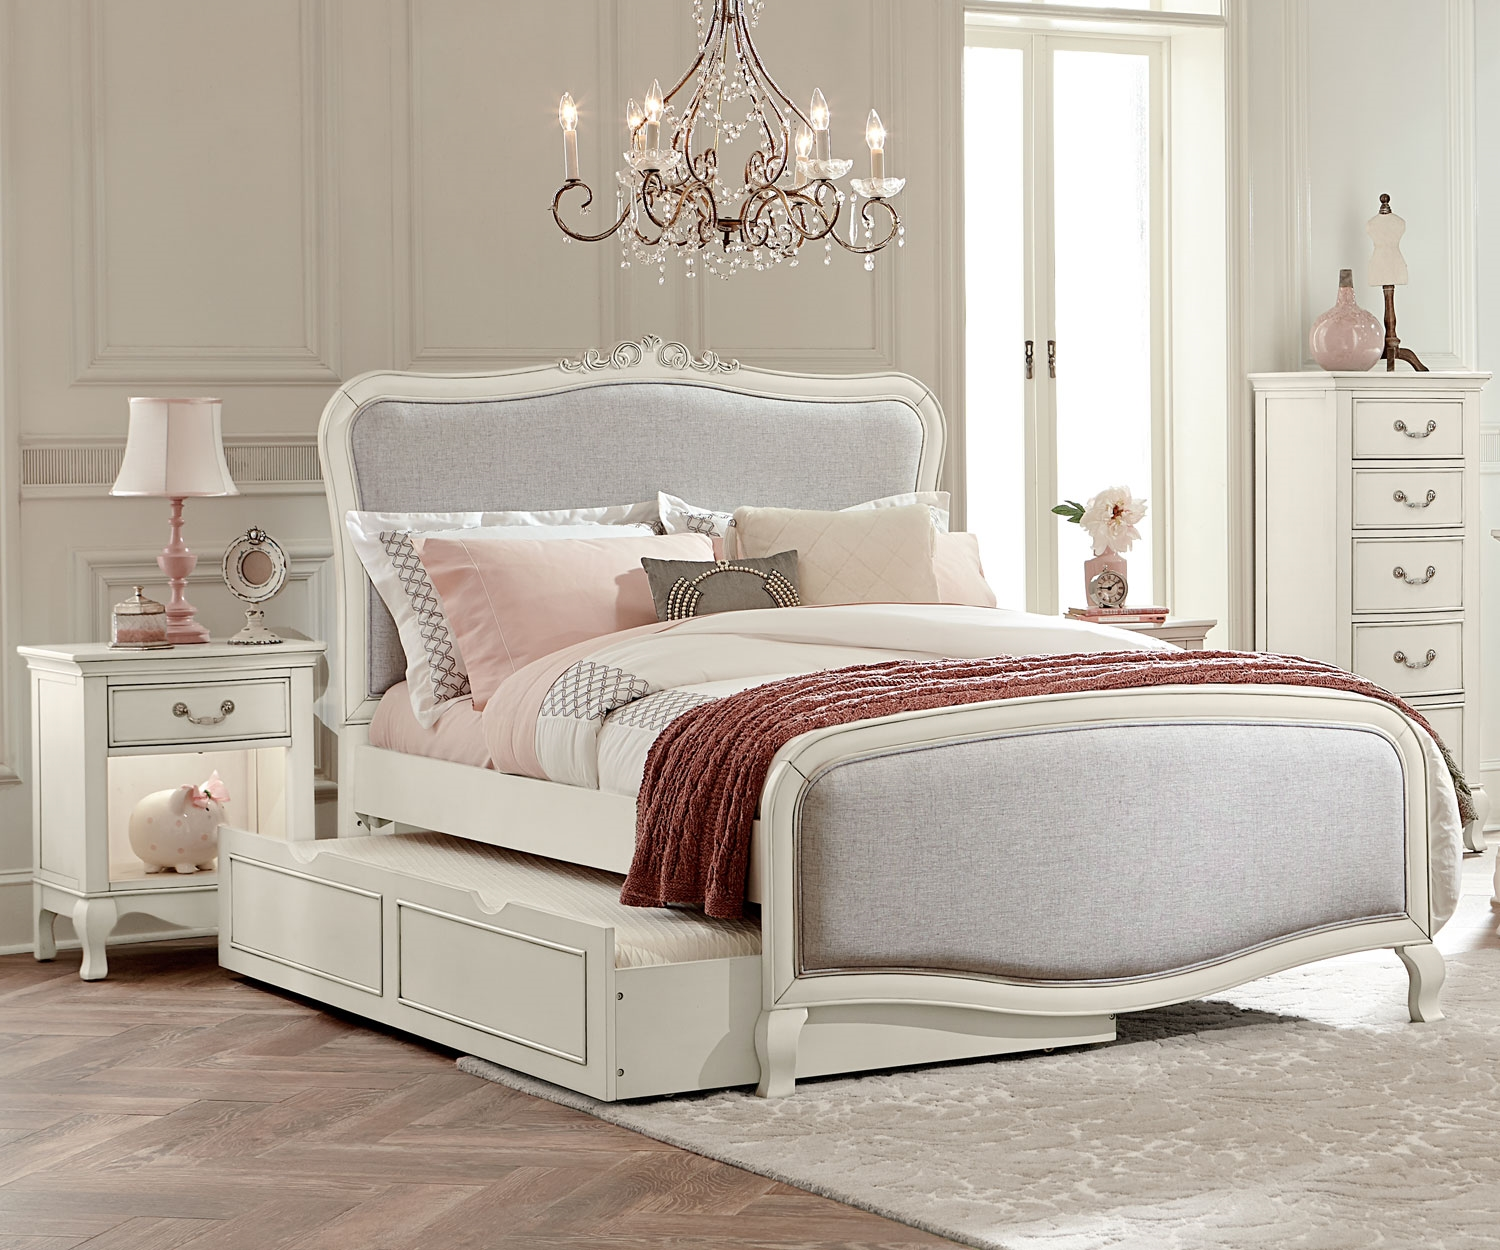 Image of: Full Bed with Trundle Ideas